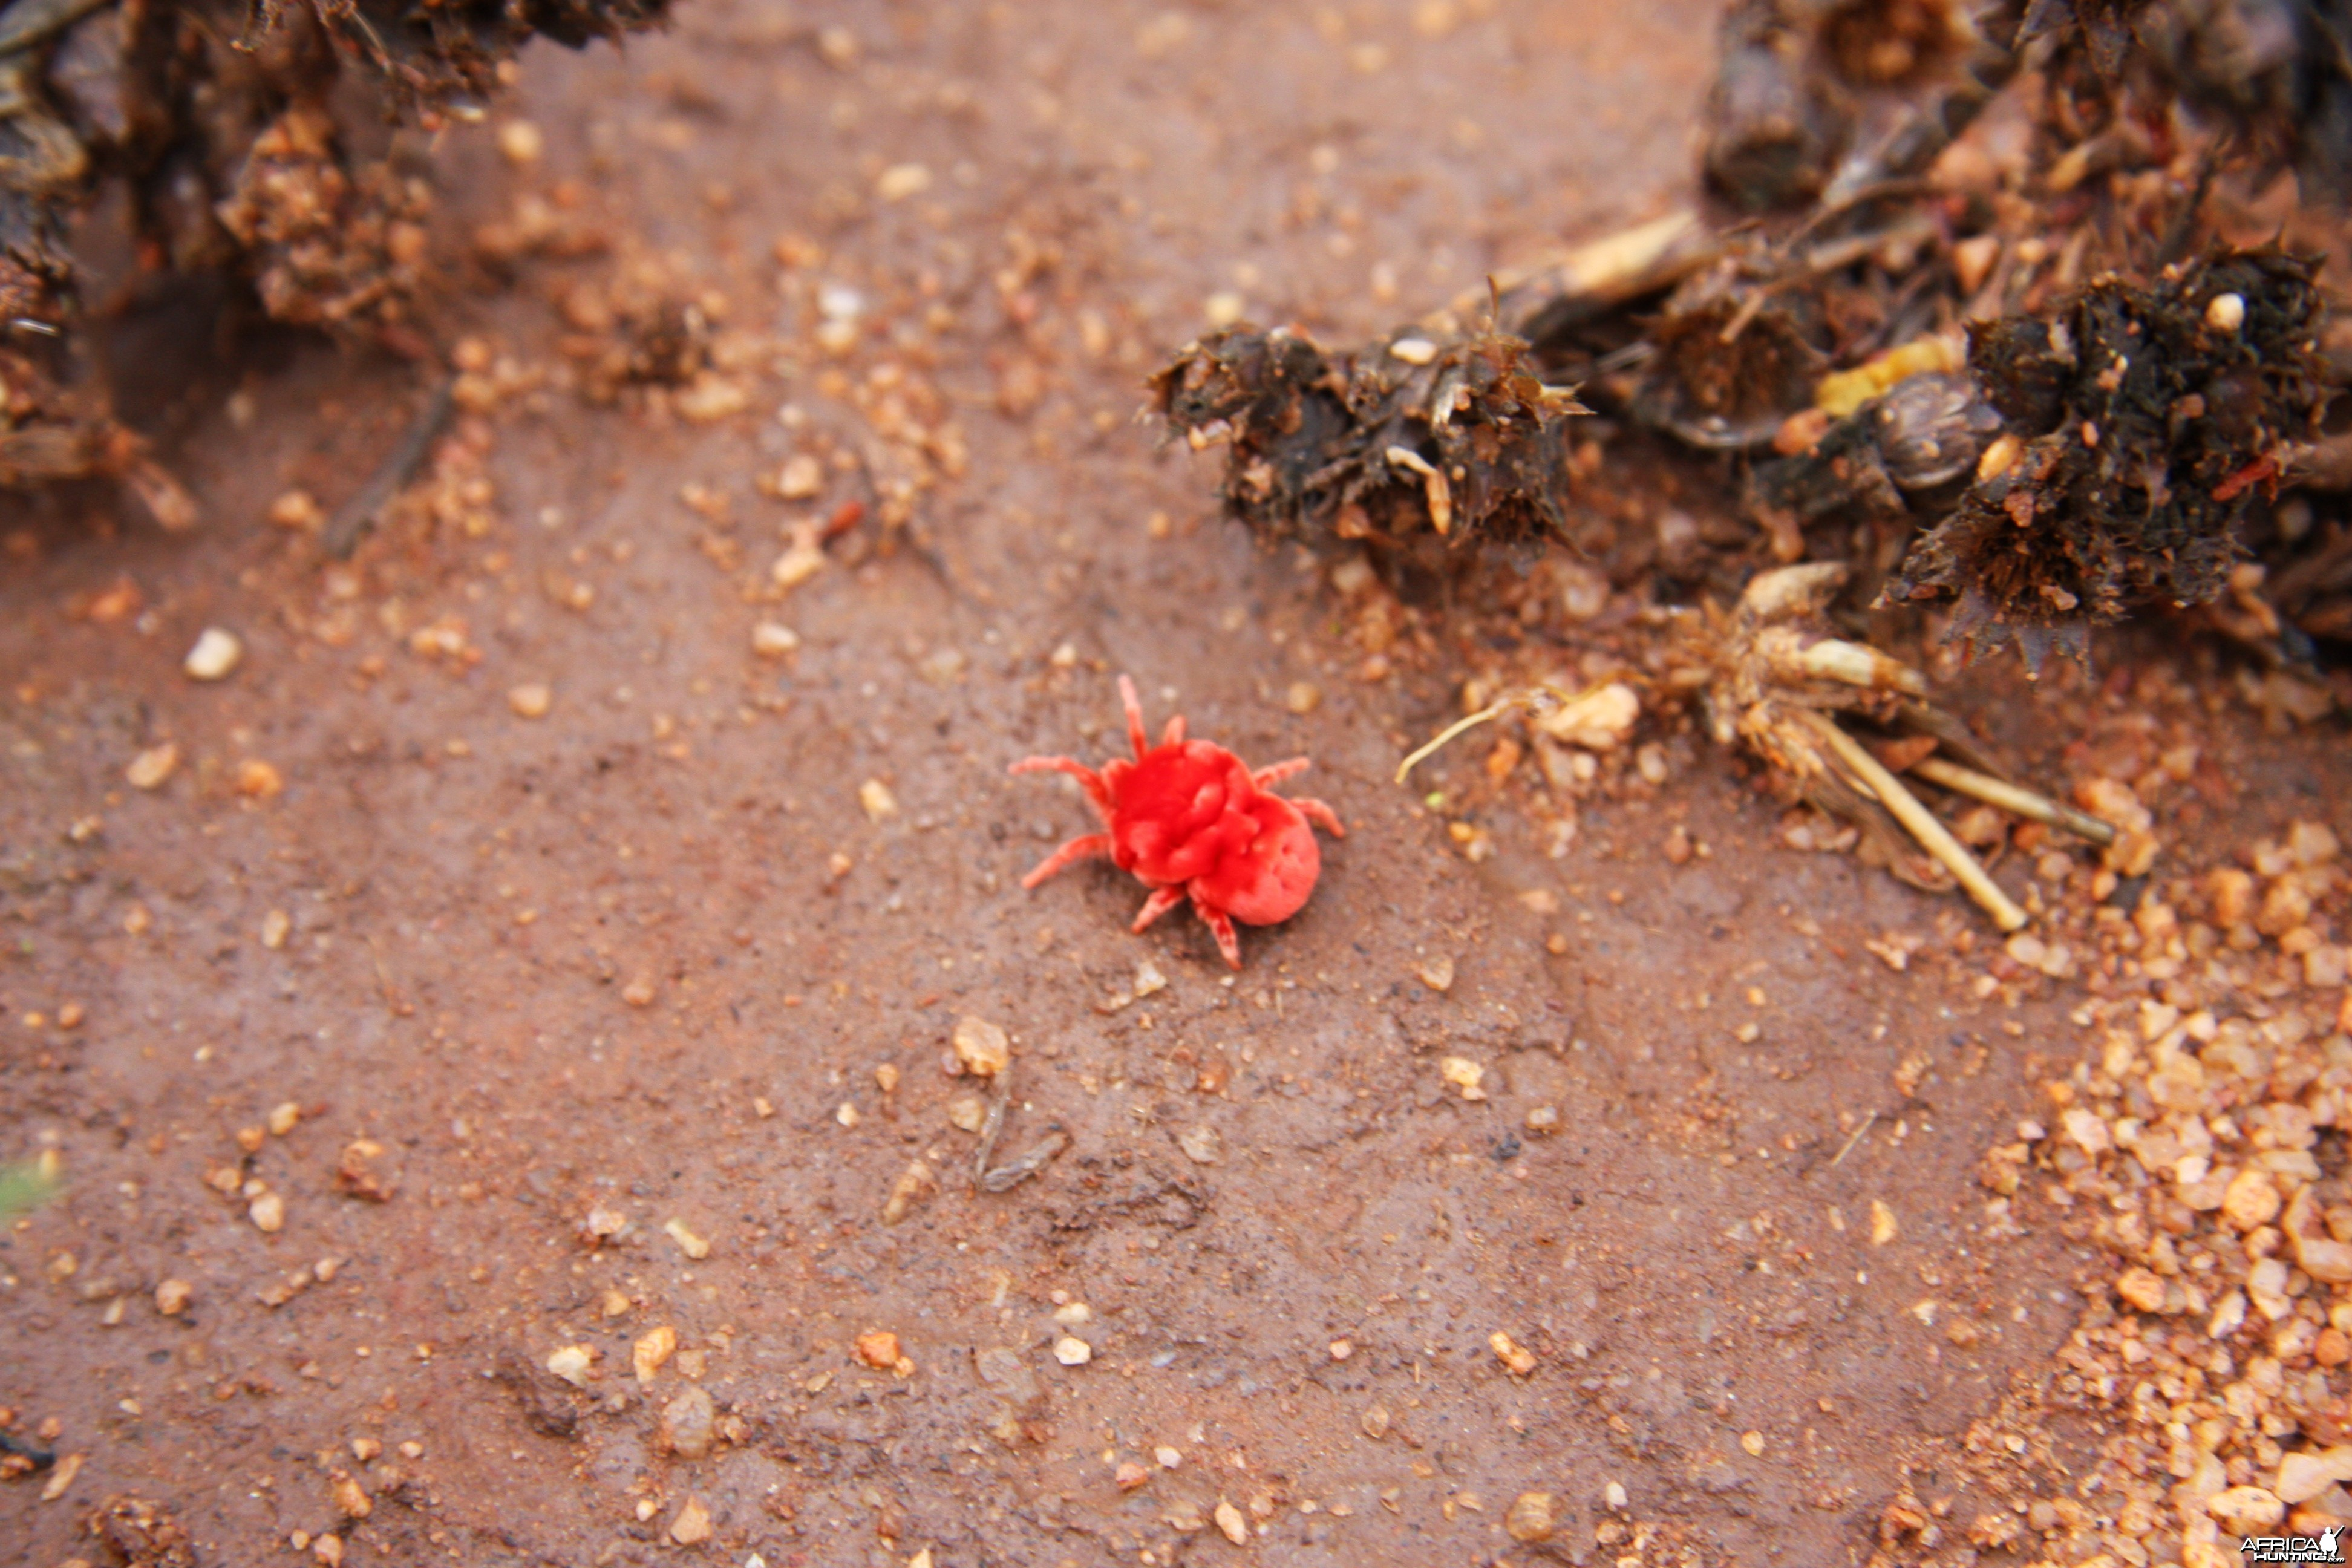 Red Spider Namibia